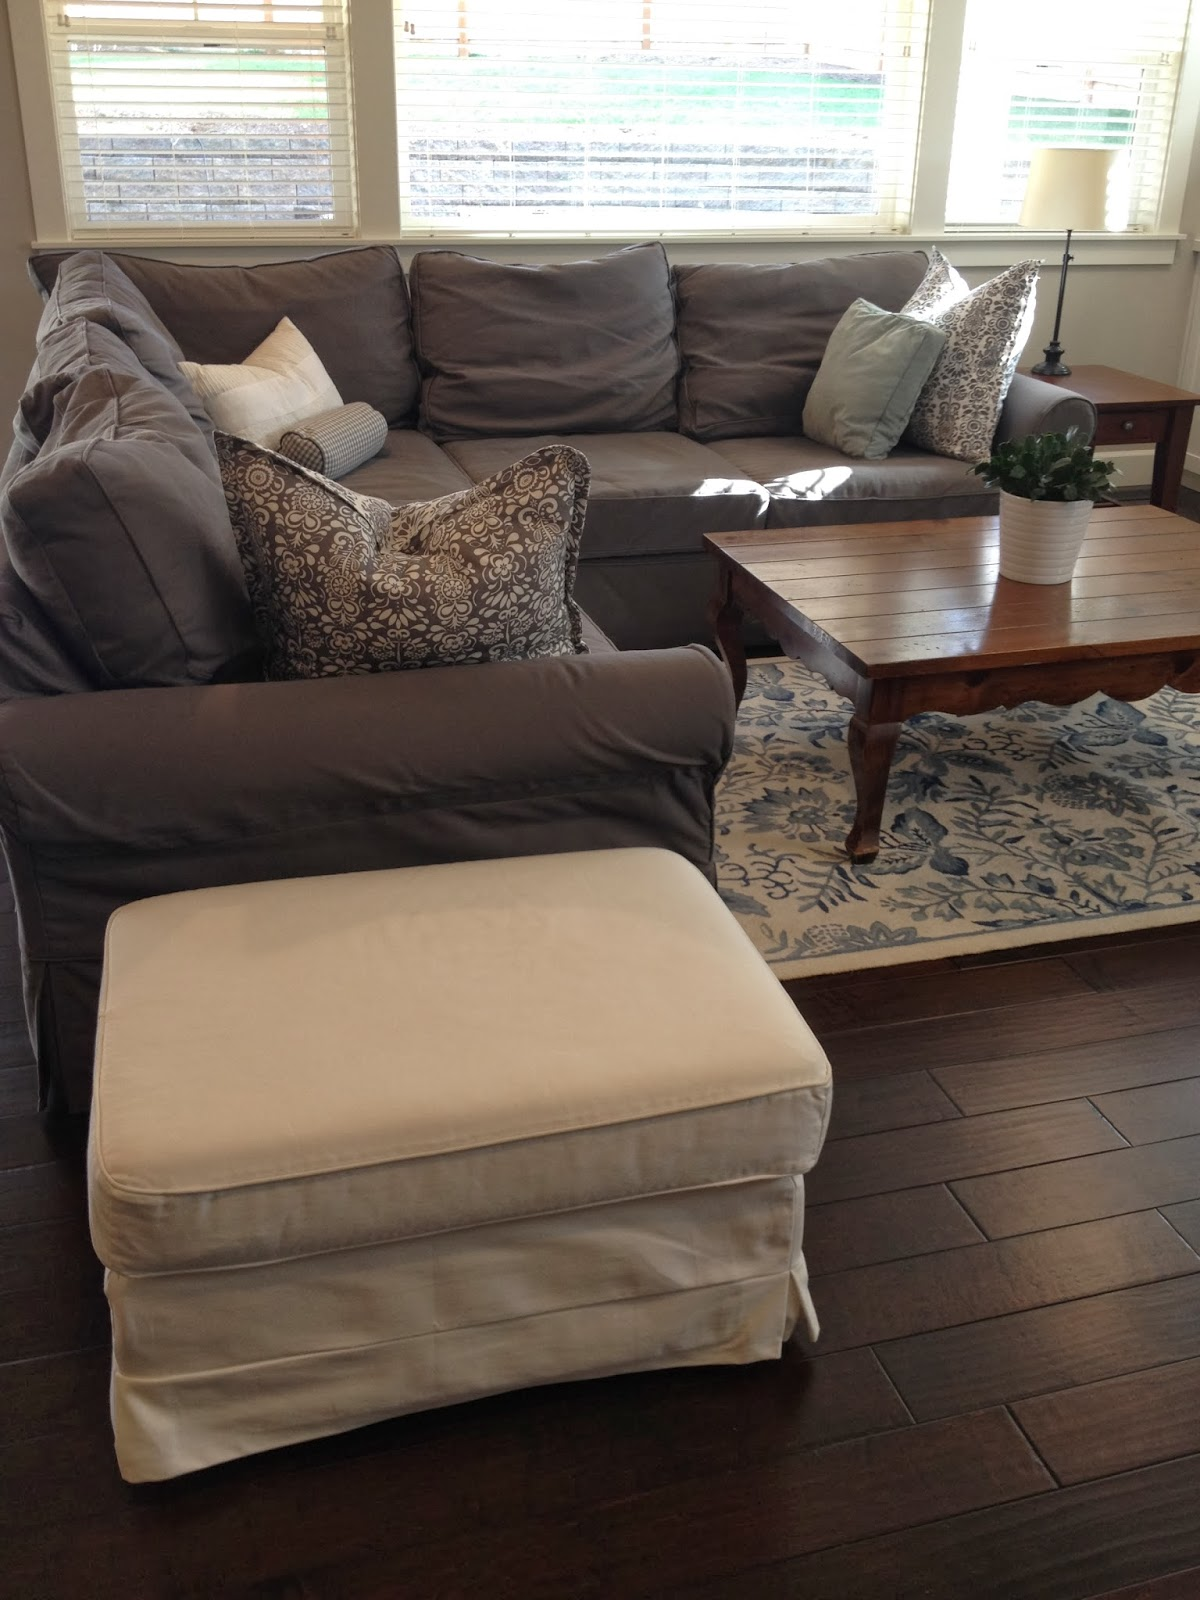 Slipcovers For Pottery Barn Sofas hmmi